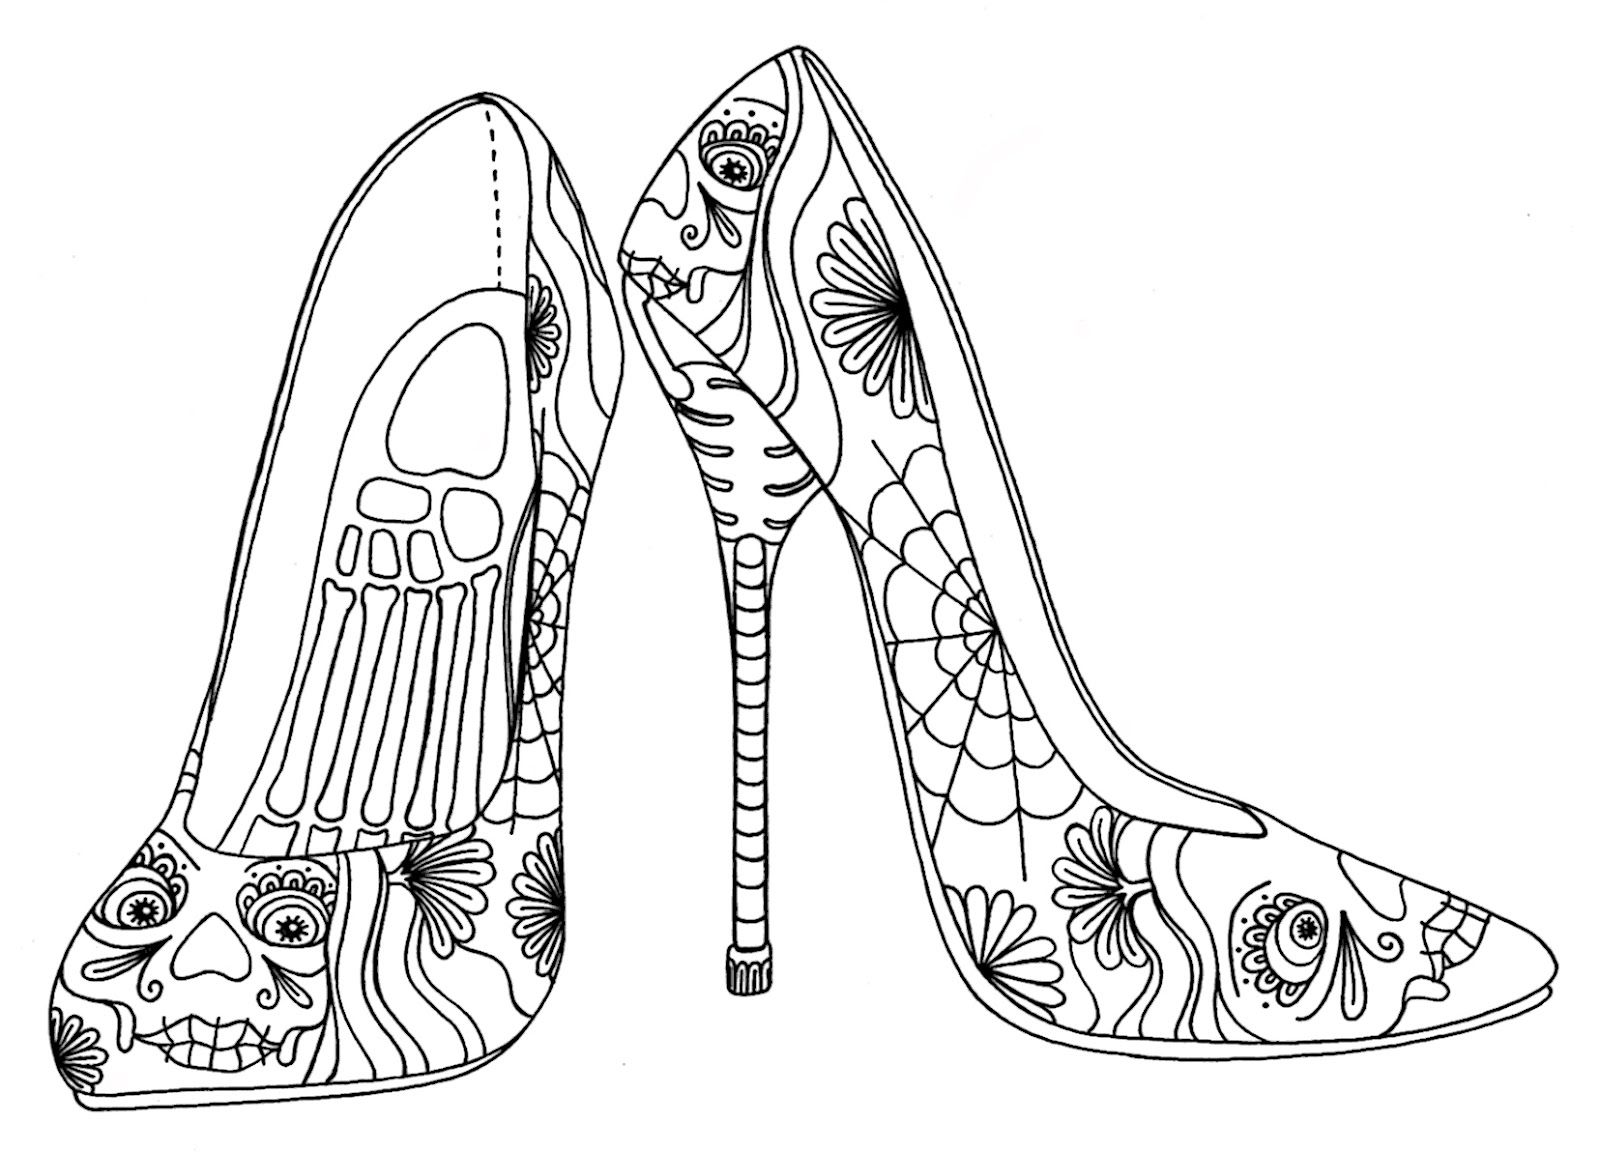 - Wenchkin's Coloring Pages - Day Of The Heels Plus Bonus Page (With